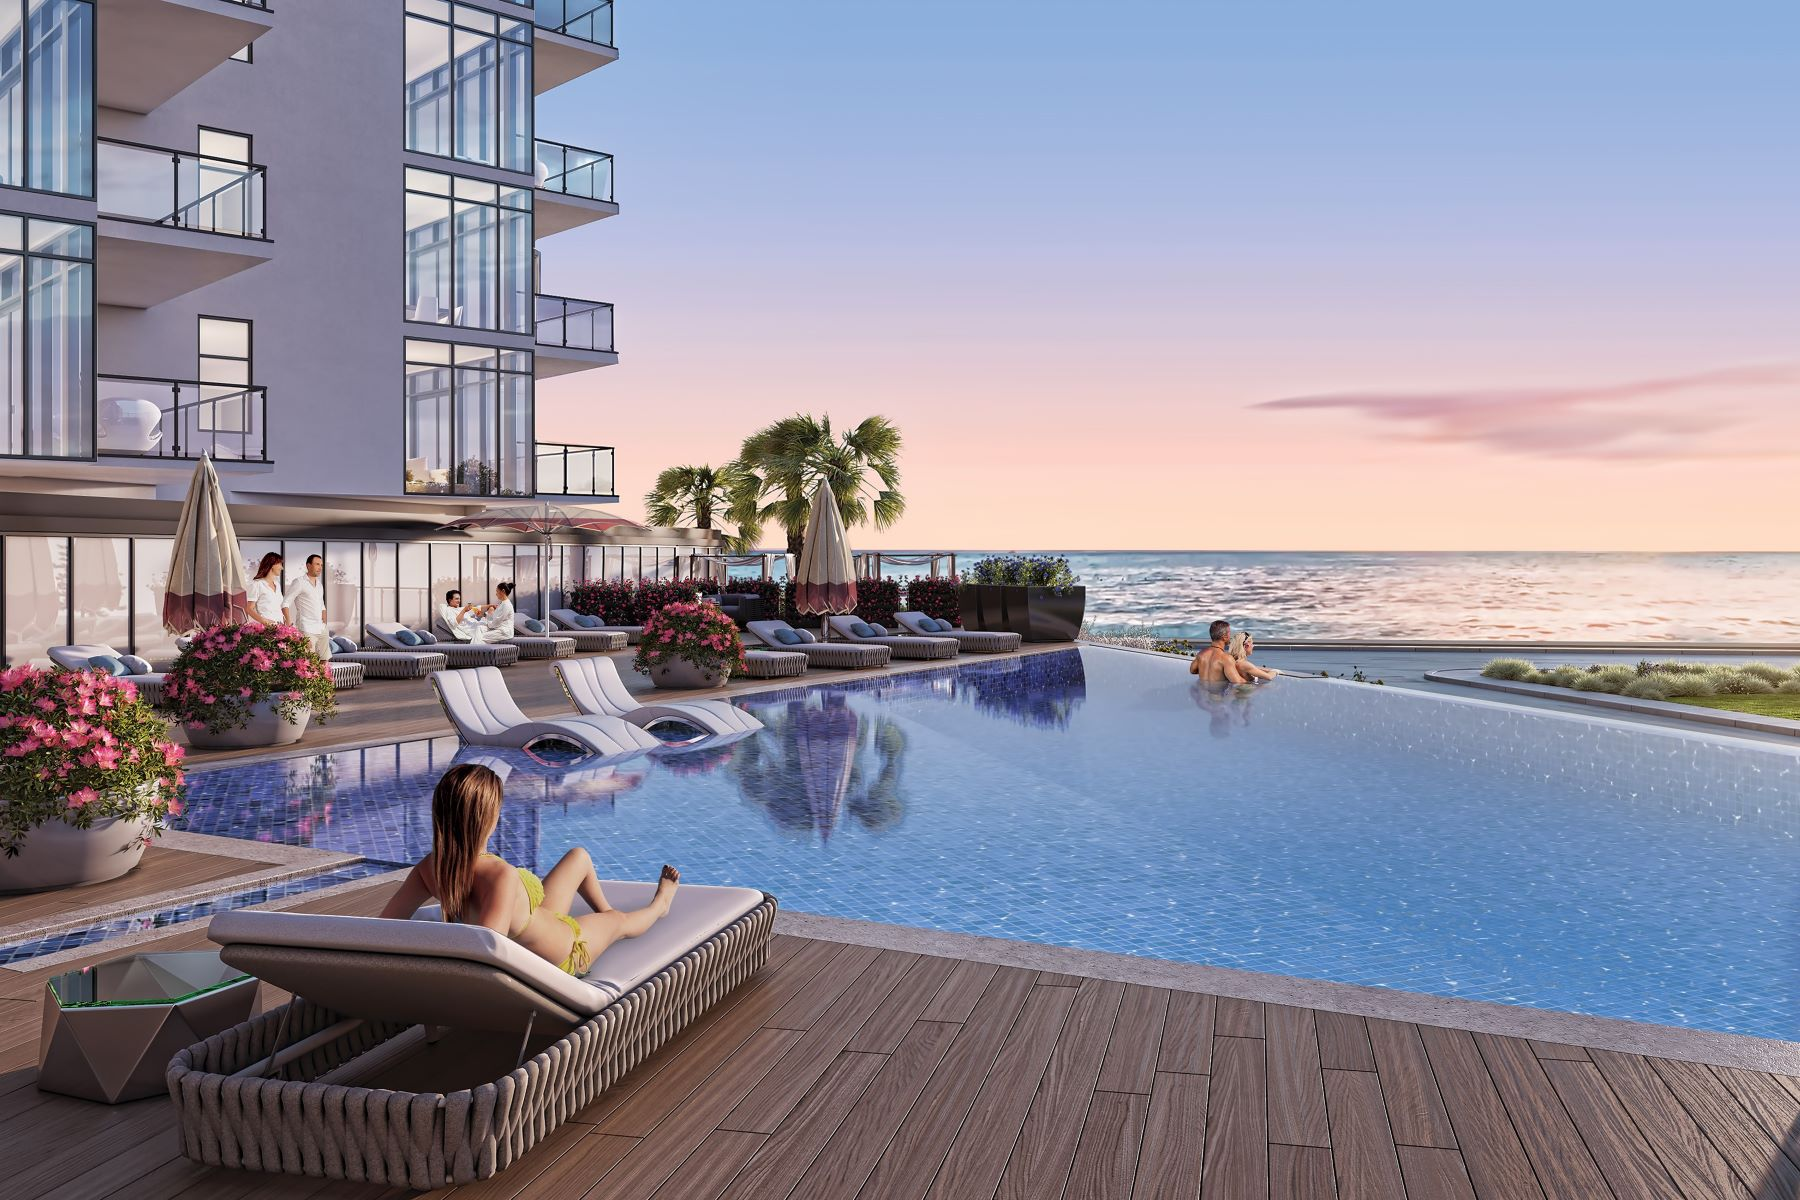 Additional photo for property listing at South Beach at Long Branch 350 Ocean Avenue 103/206, Long Branch, New Jersey 07740 United States